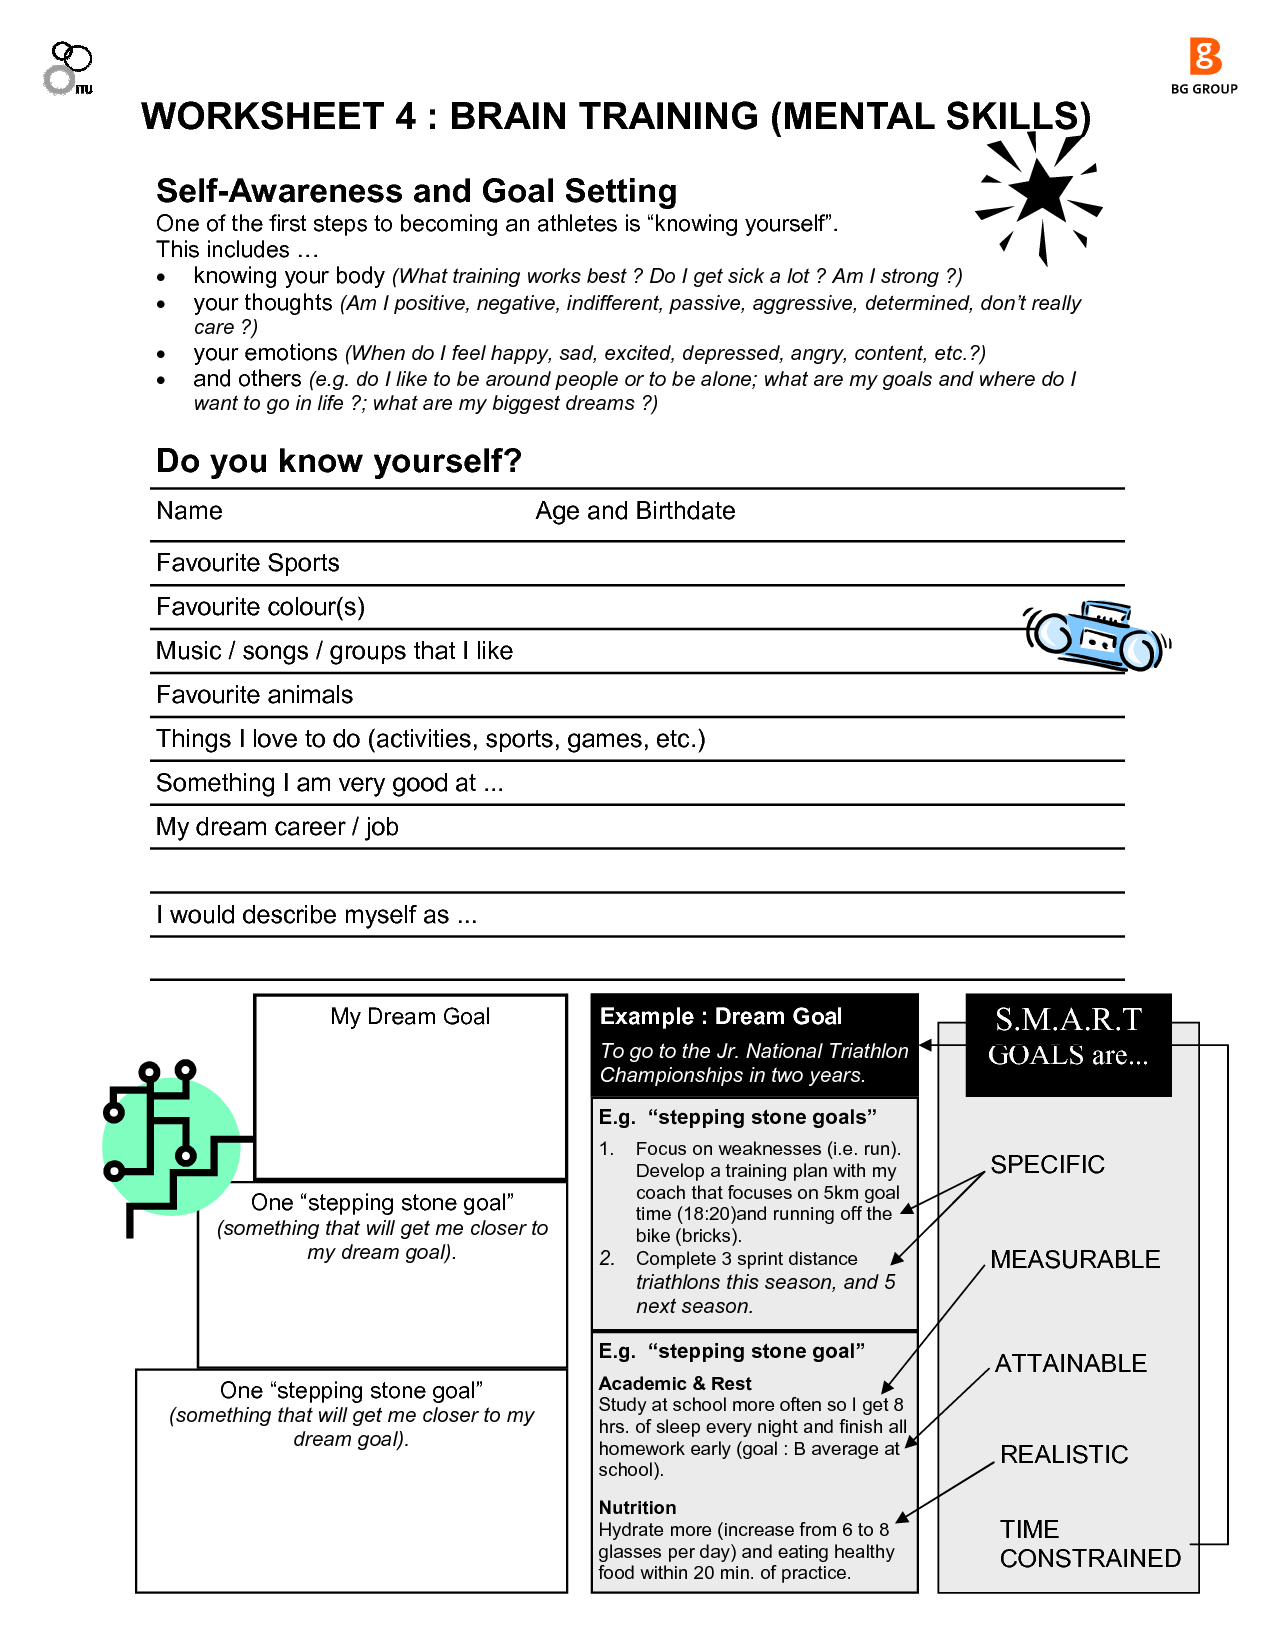 13 Best Images of The Family And Recovery Worksheets ...